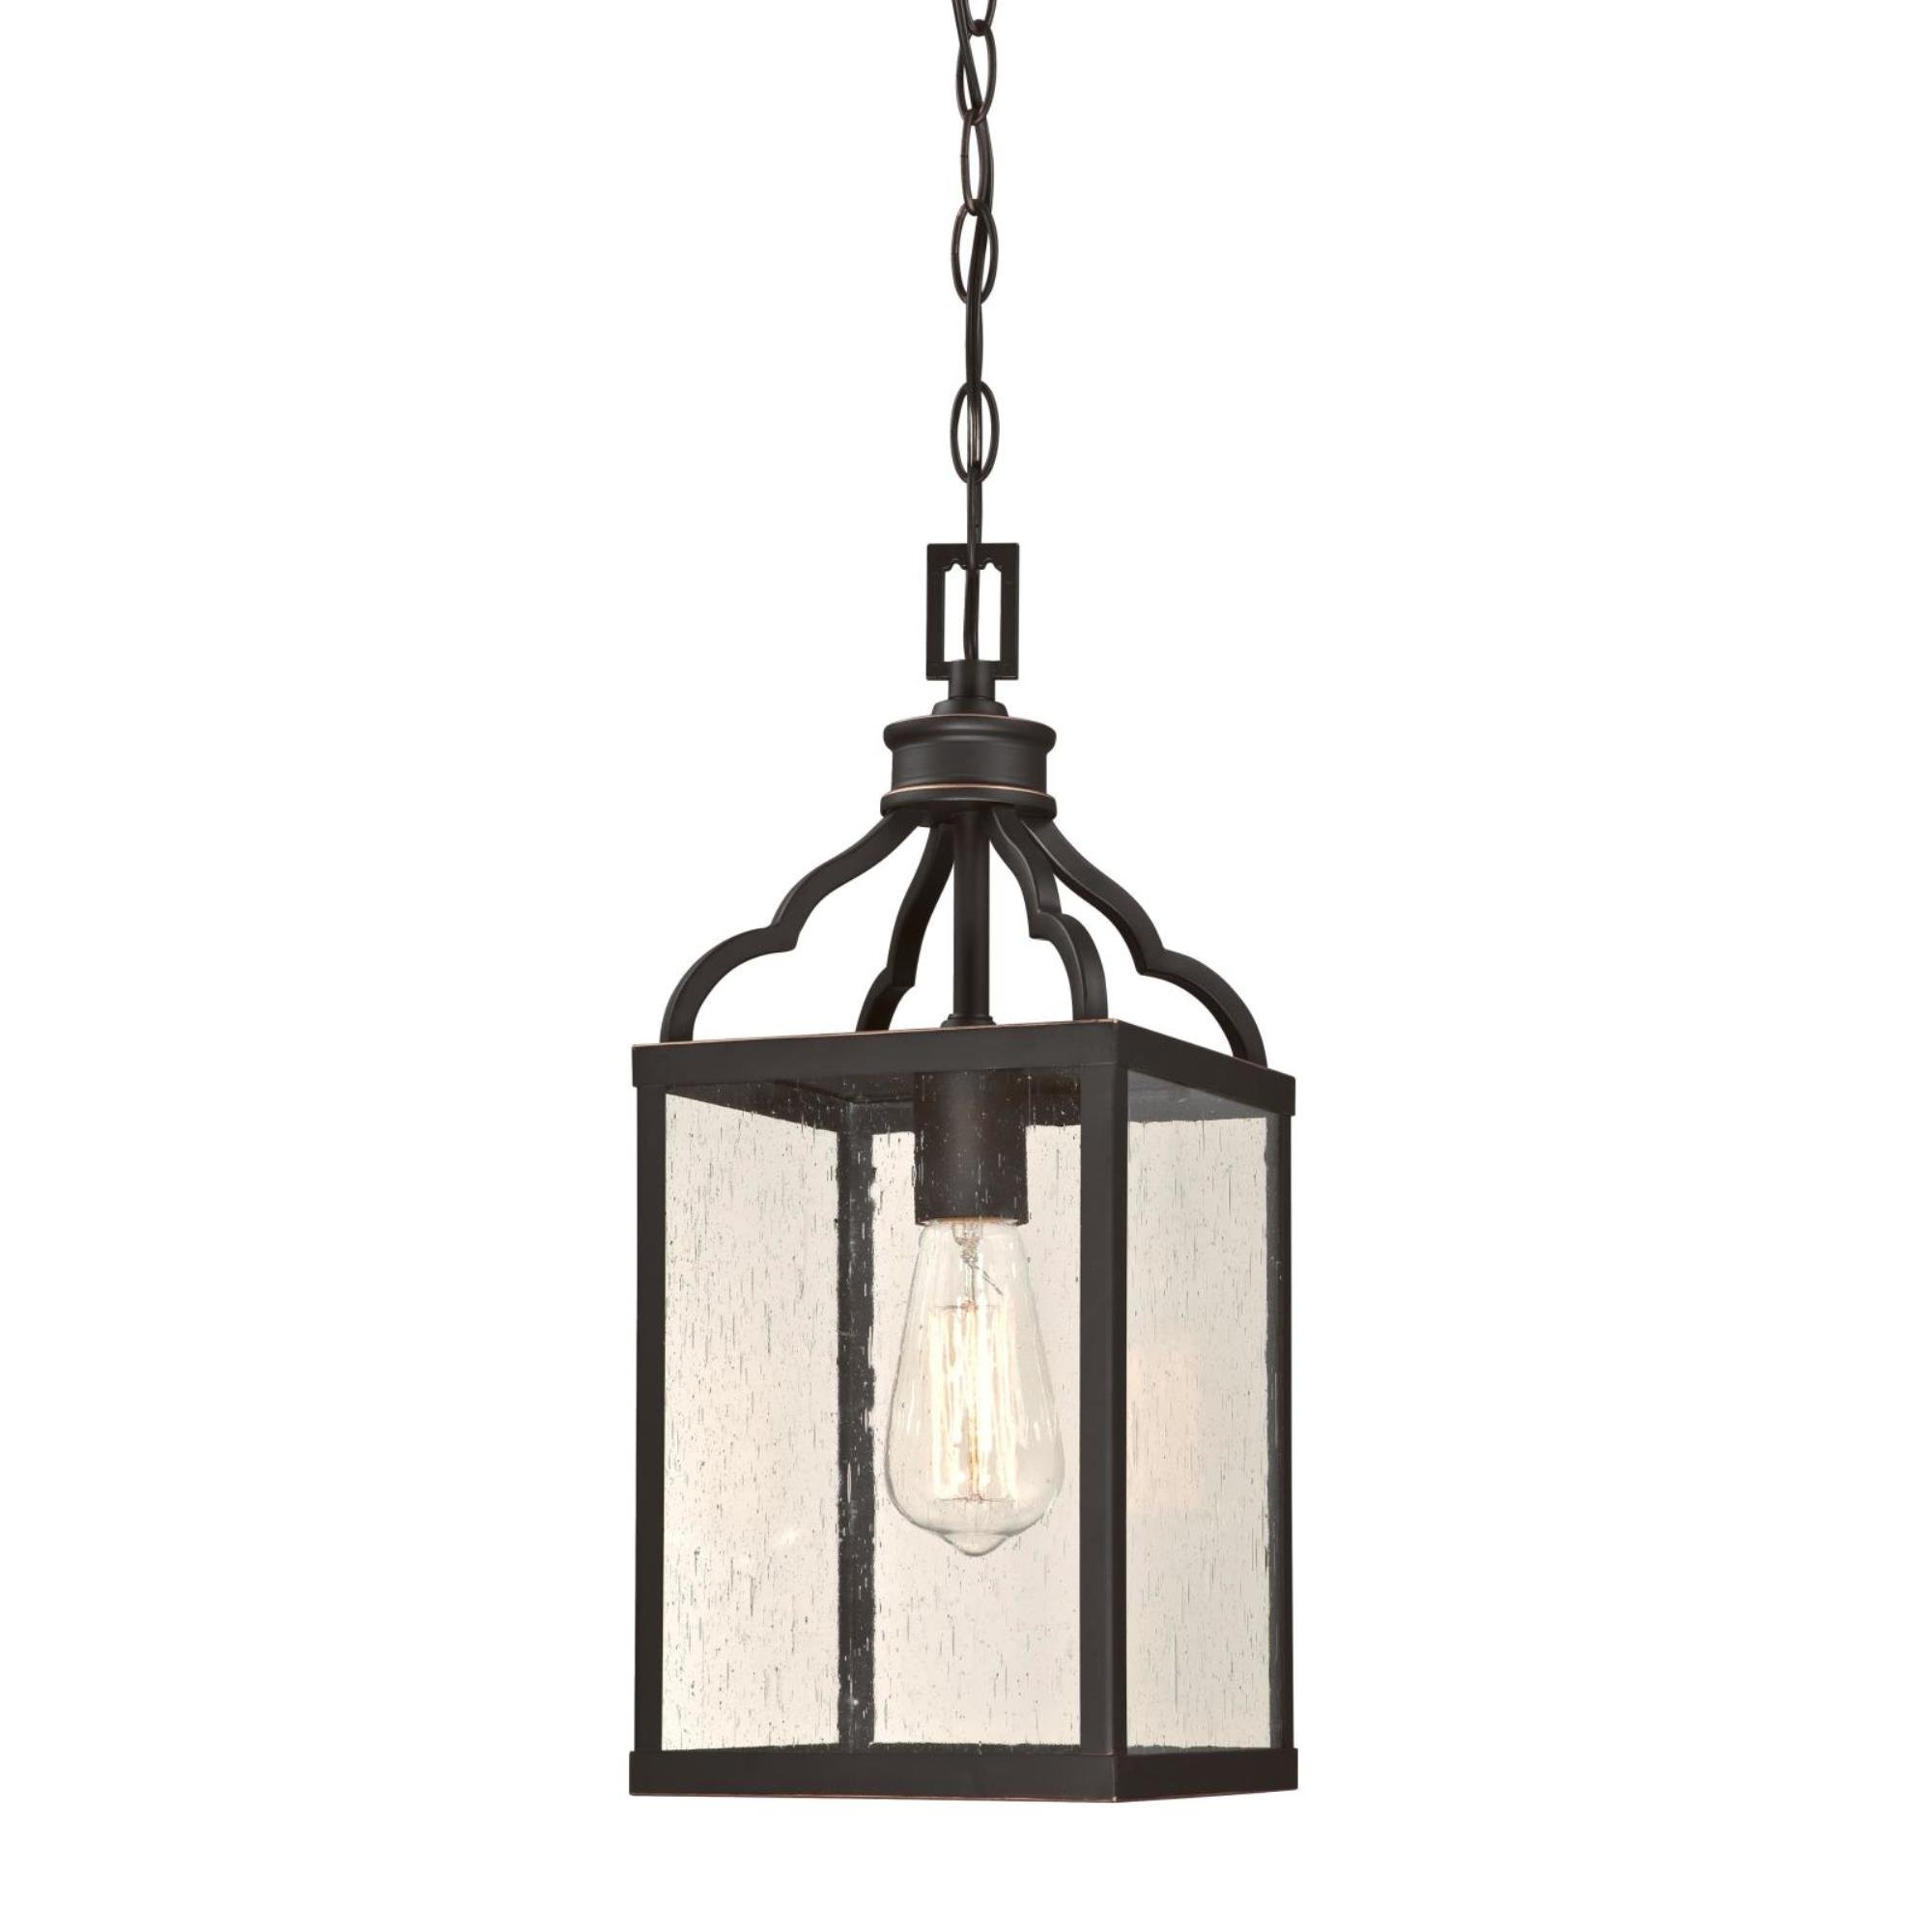 Westinghouse Lighting 6359300 Cardinal One-Light, Oil Rubbed Bronze Finish with Highlights and Clear Seeded Glass Outdoor Pendant, HI by Westinghouse Lighting